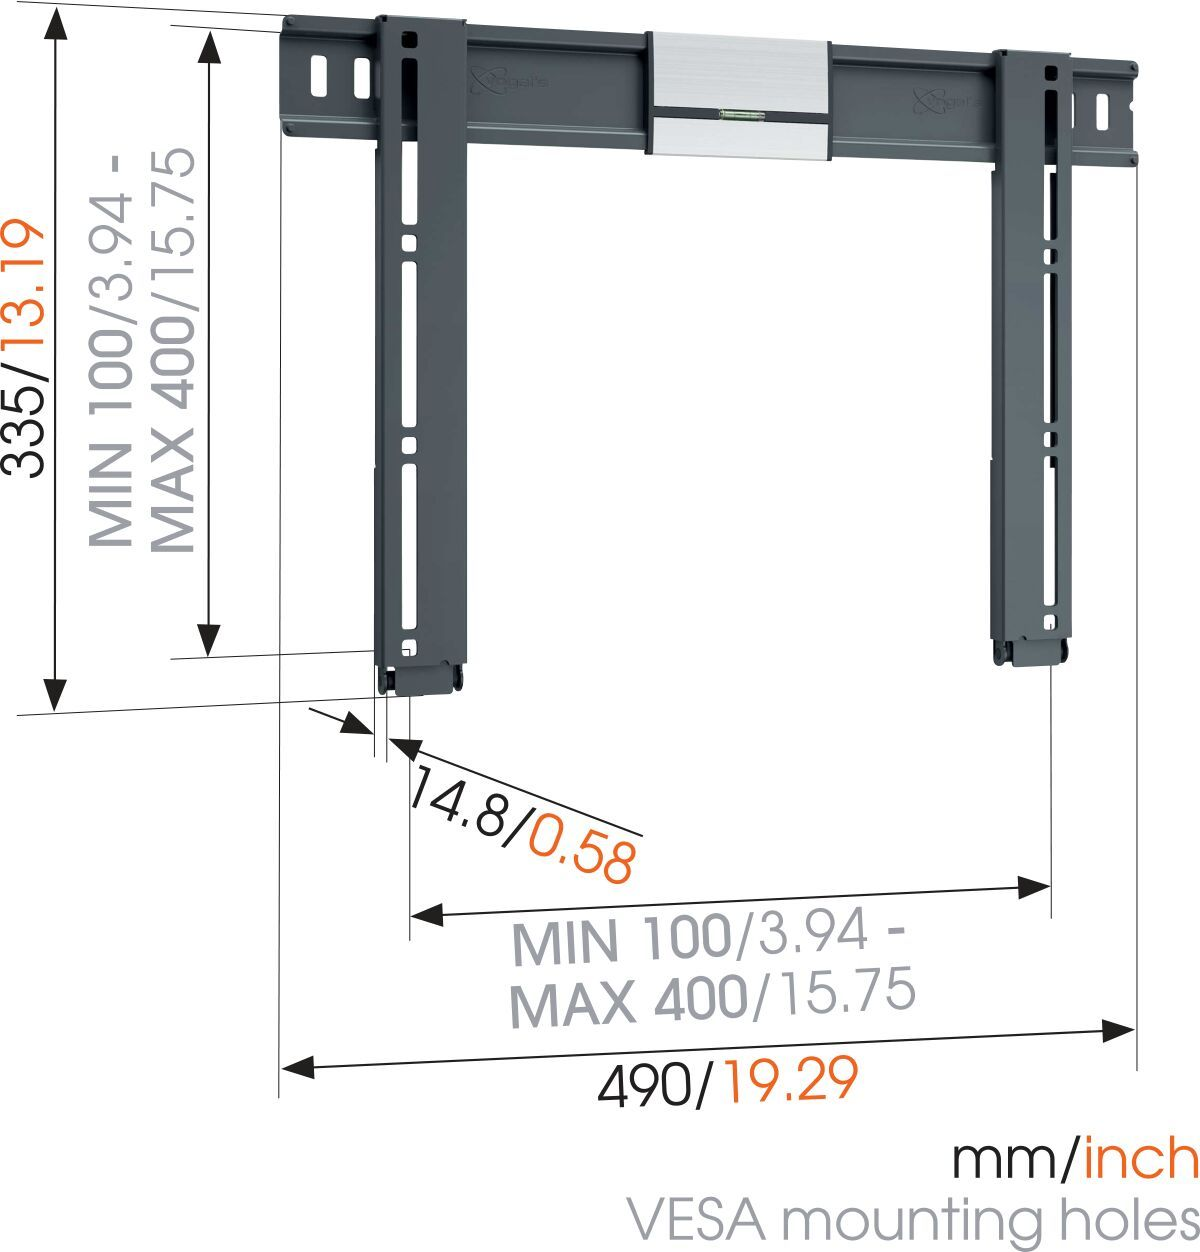 Vogel's THIN 405 ExtraThin Fixed TV Wall Mount - Suitable for 26 up to 55 inch TVs up to 25 kg - Dimensions